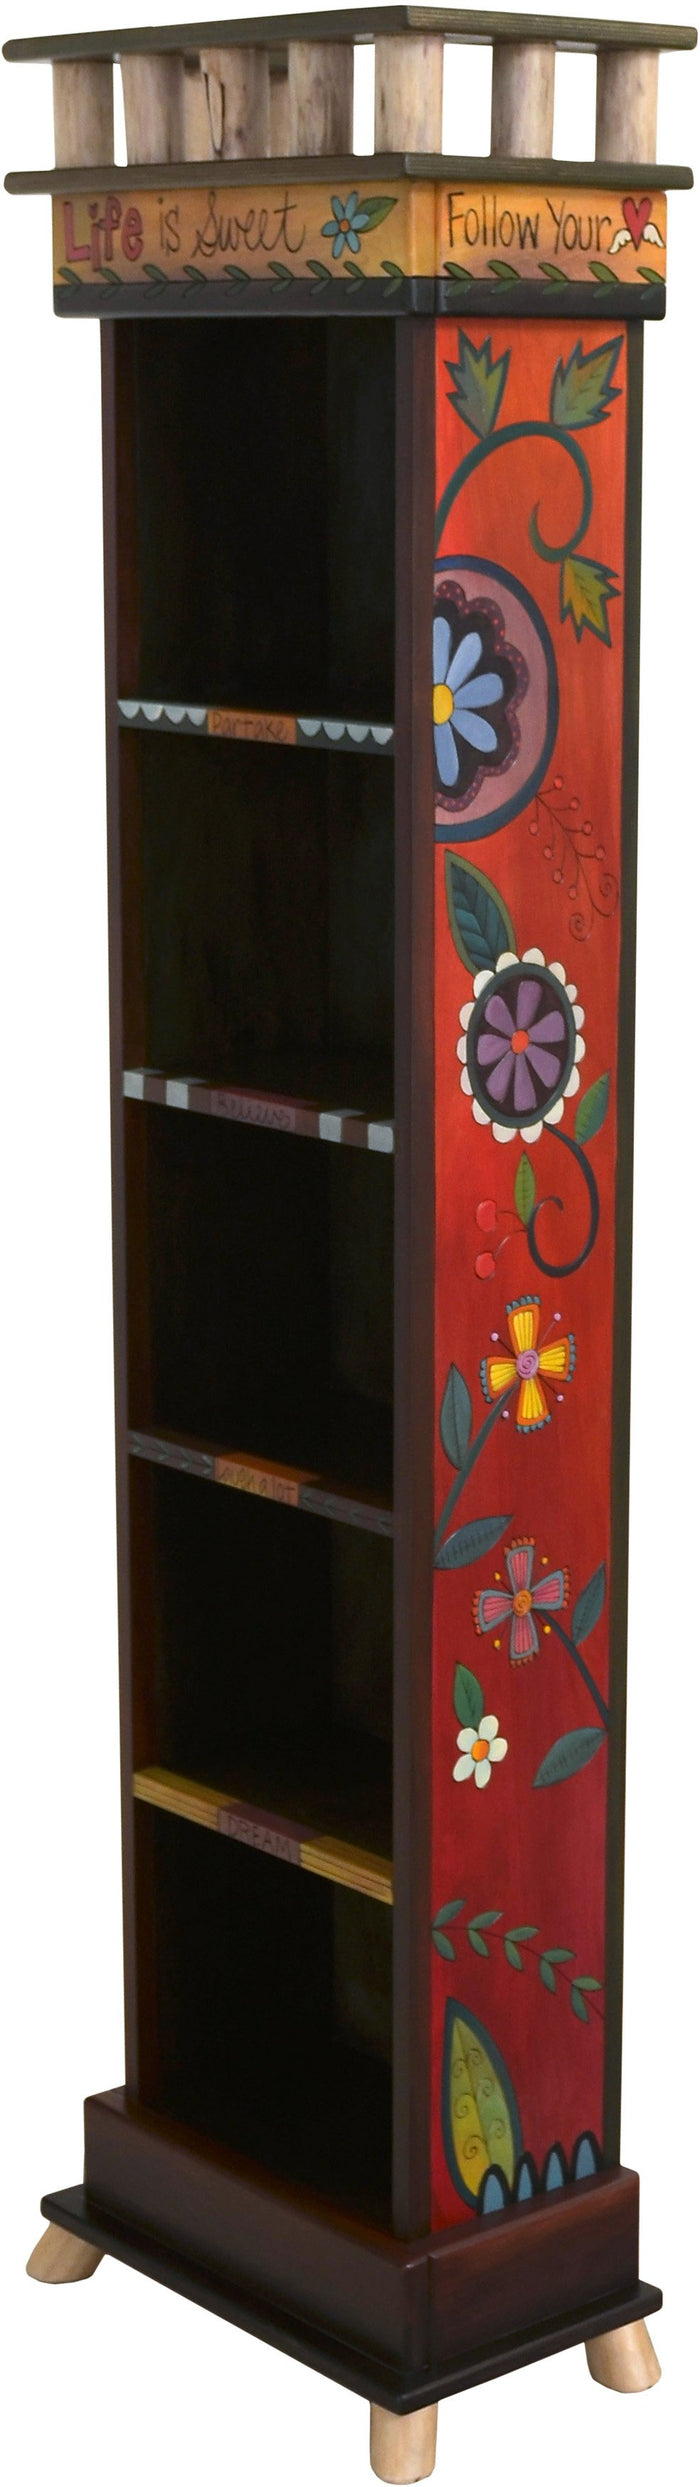 Tall Skinny Bookcase